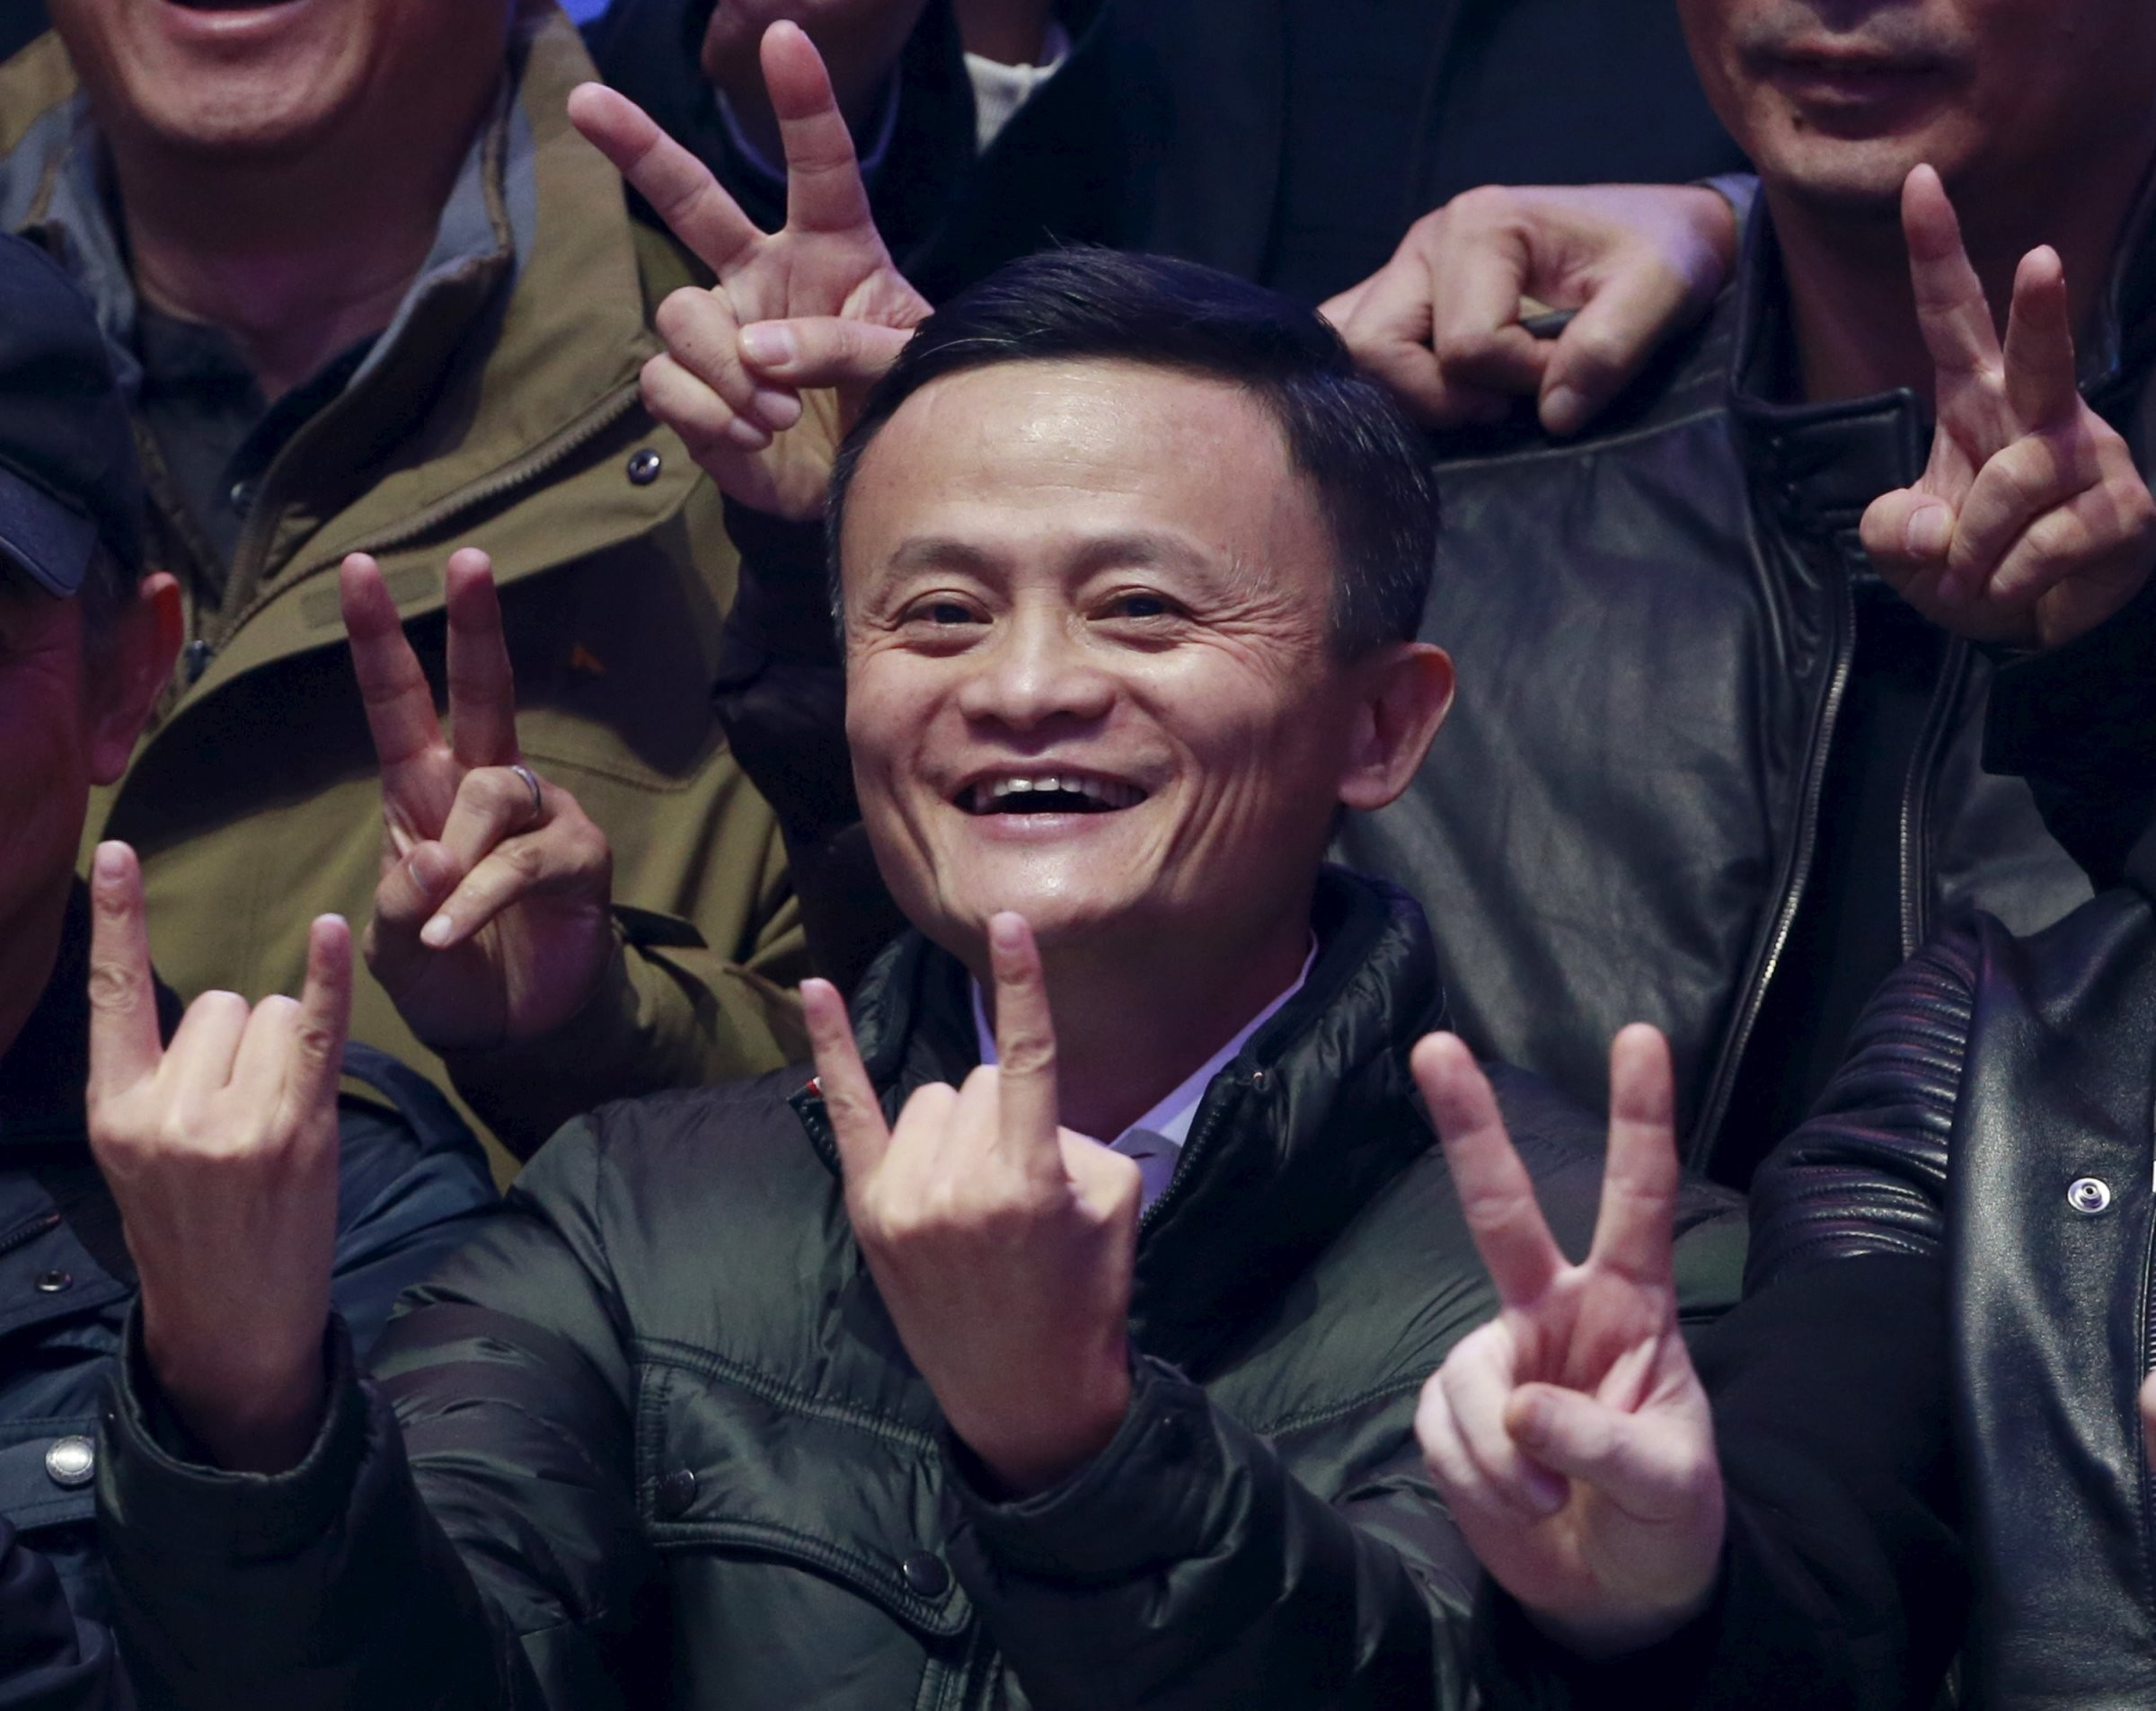 Alibaba founder and chairman Jack Ma smiles as he poses with attendants after watching real-time data of transactions at Alibaba Group's 11.11 Global shopping festival in Beijing, China.